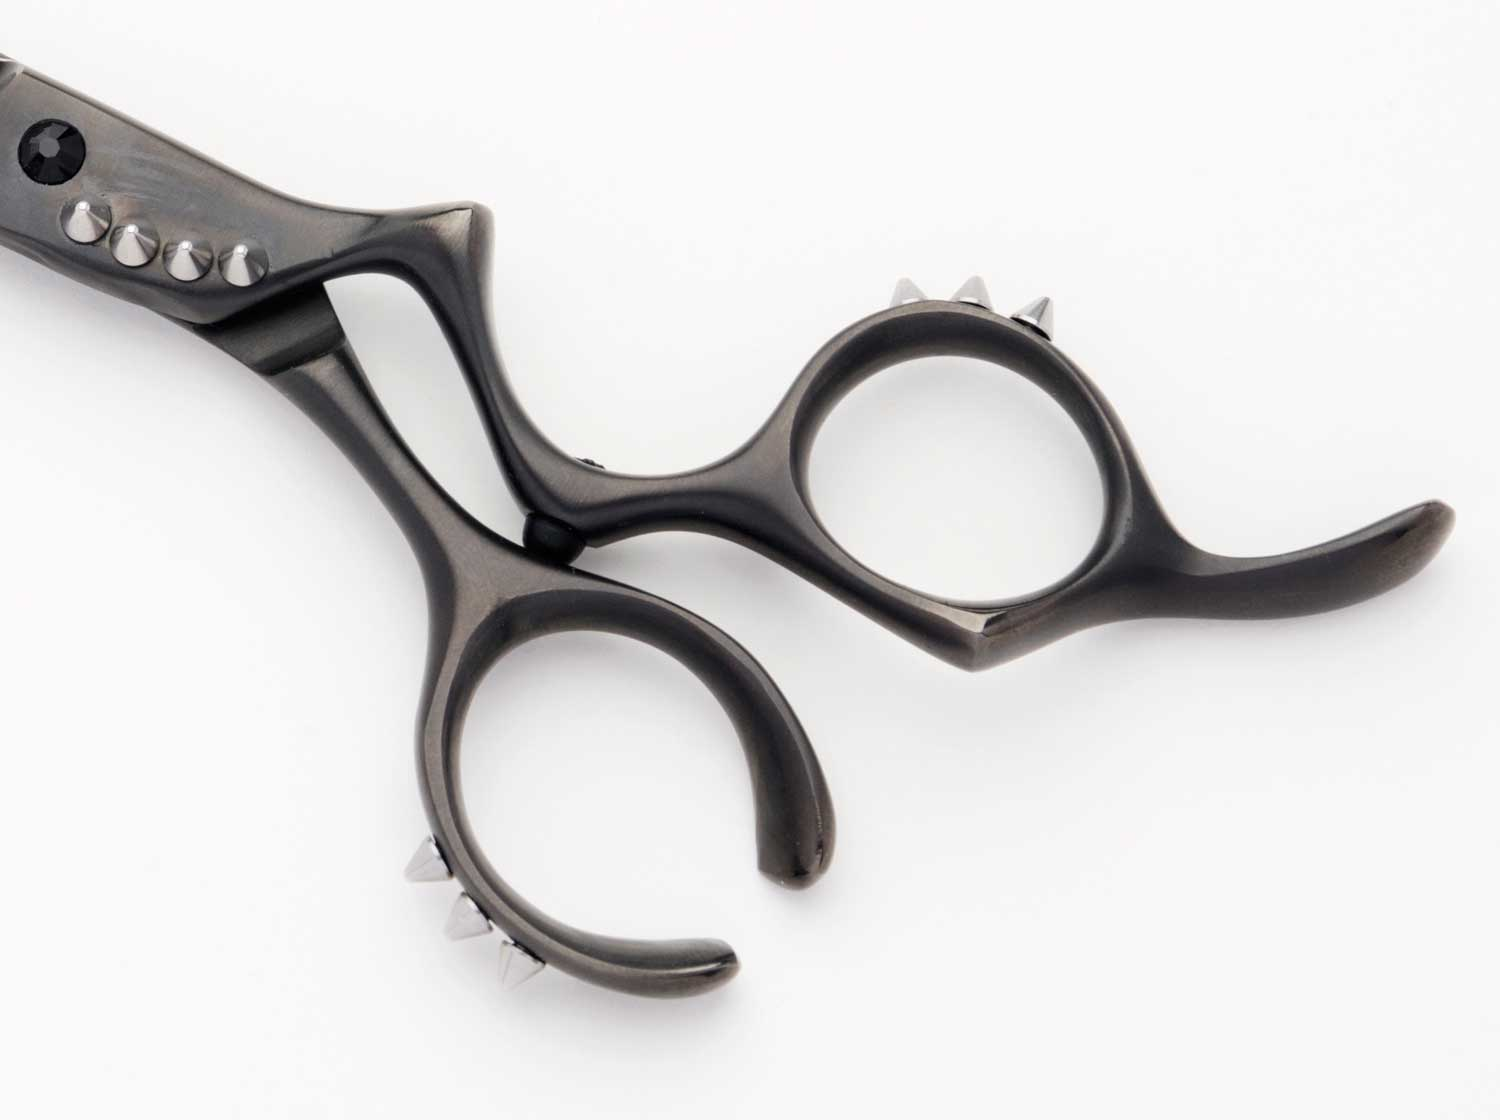 debut-rage-beauty-scissor-handle-with-10-metal-spikes.jpg